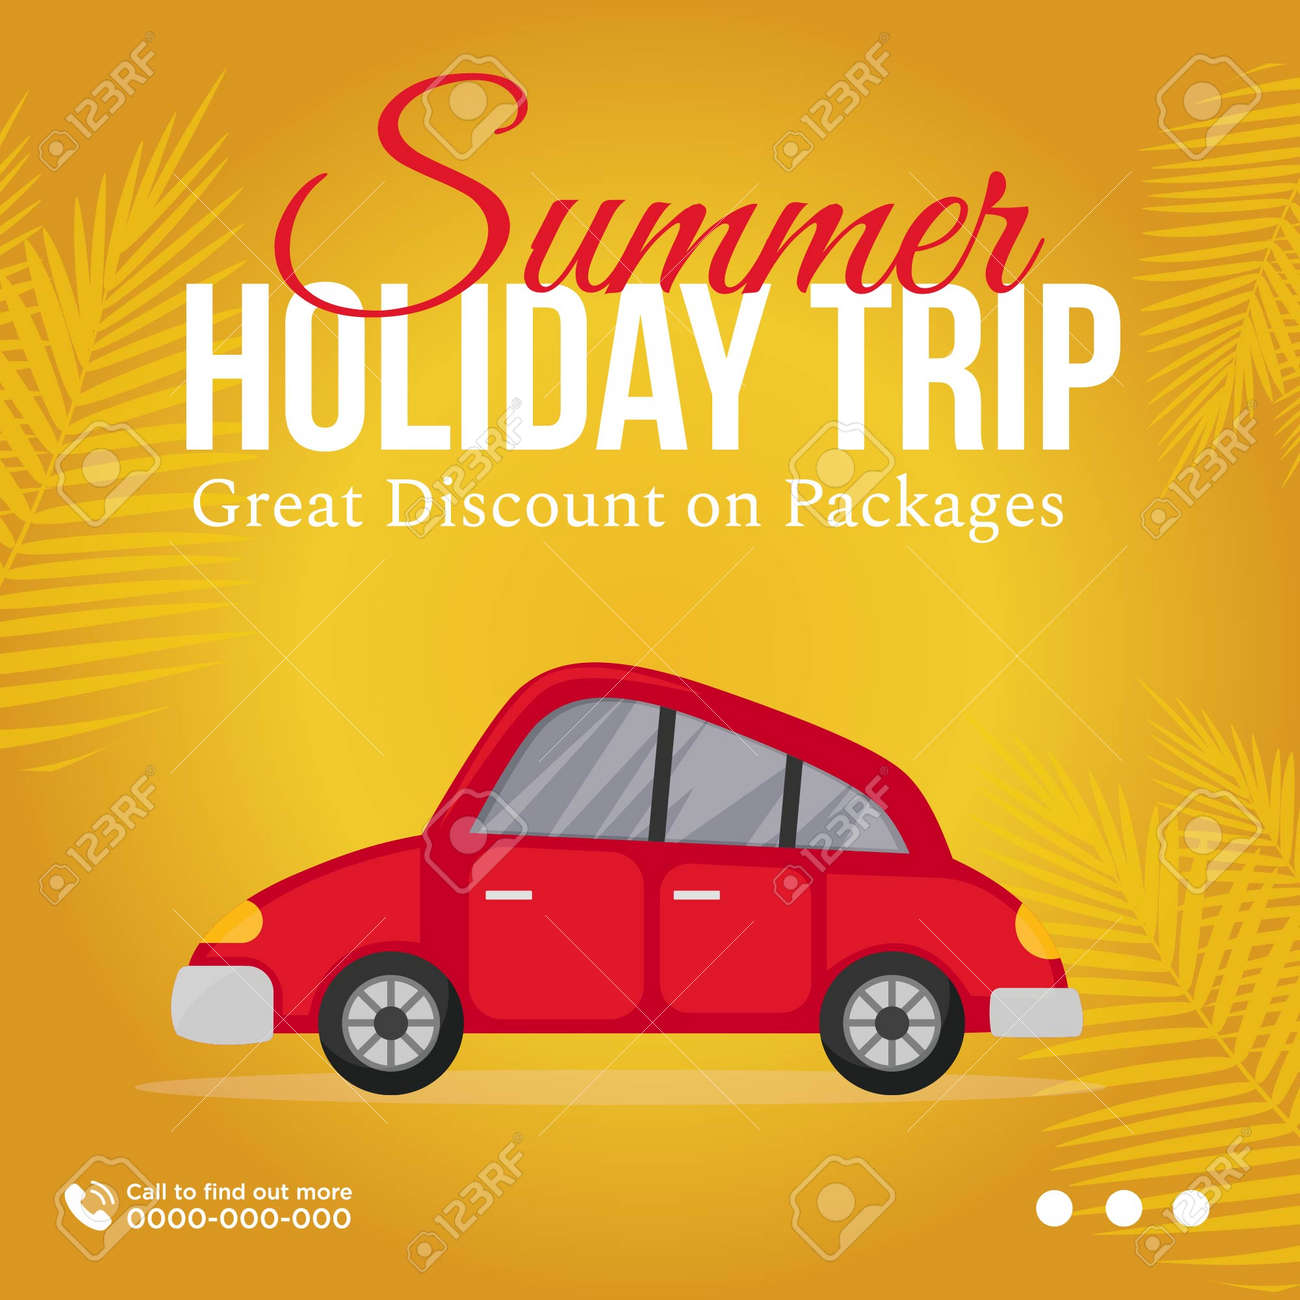 Banner design of summer holiday trip great discount on packages. Vector graphic illustration. - 171677620